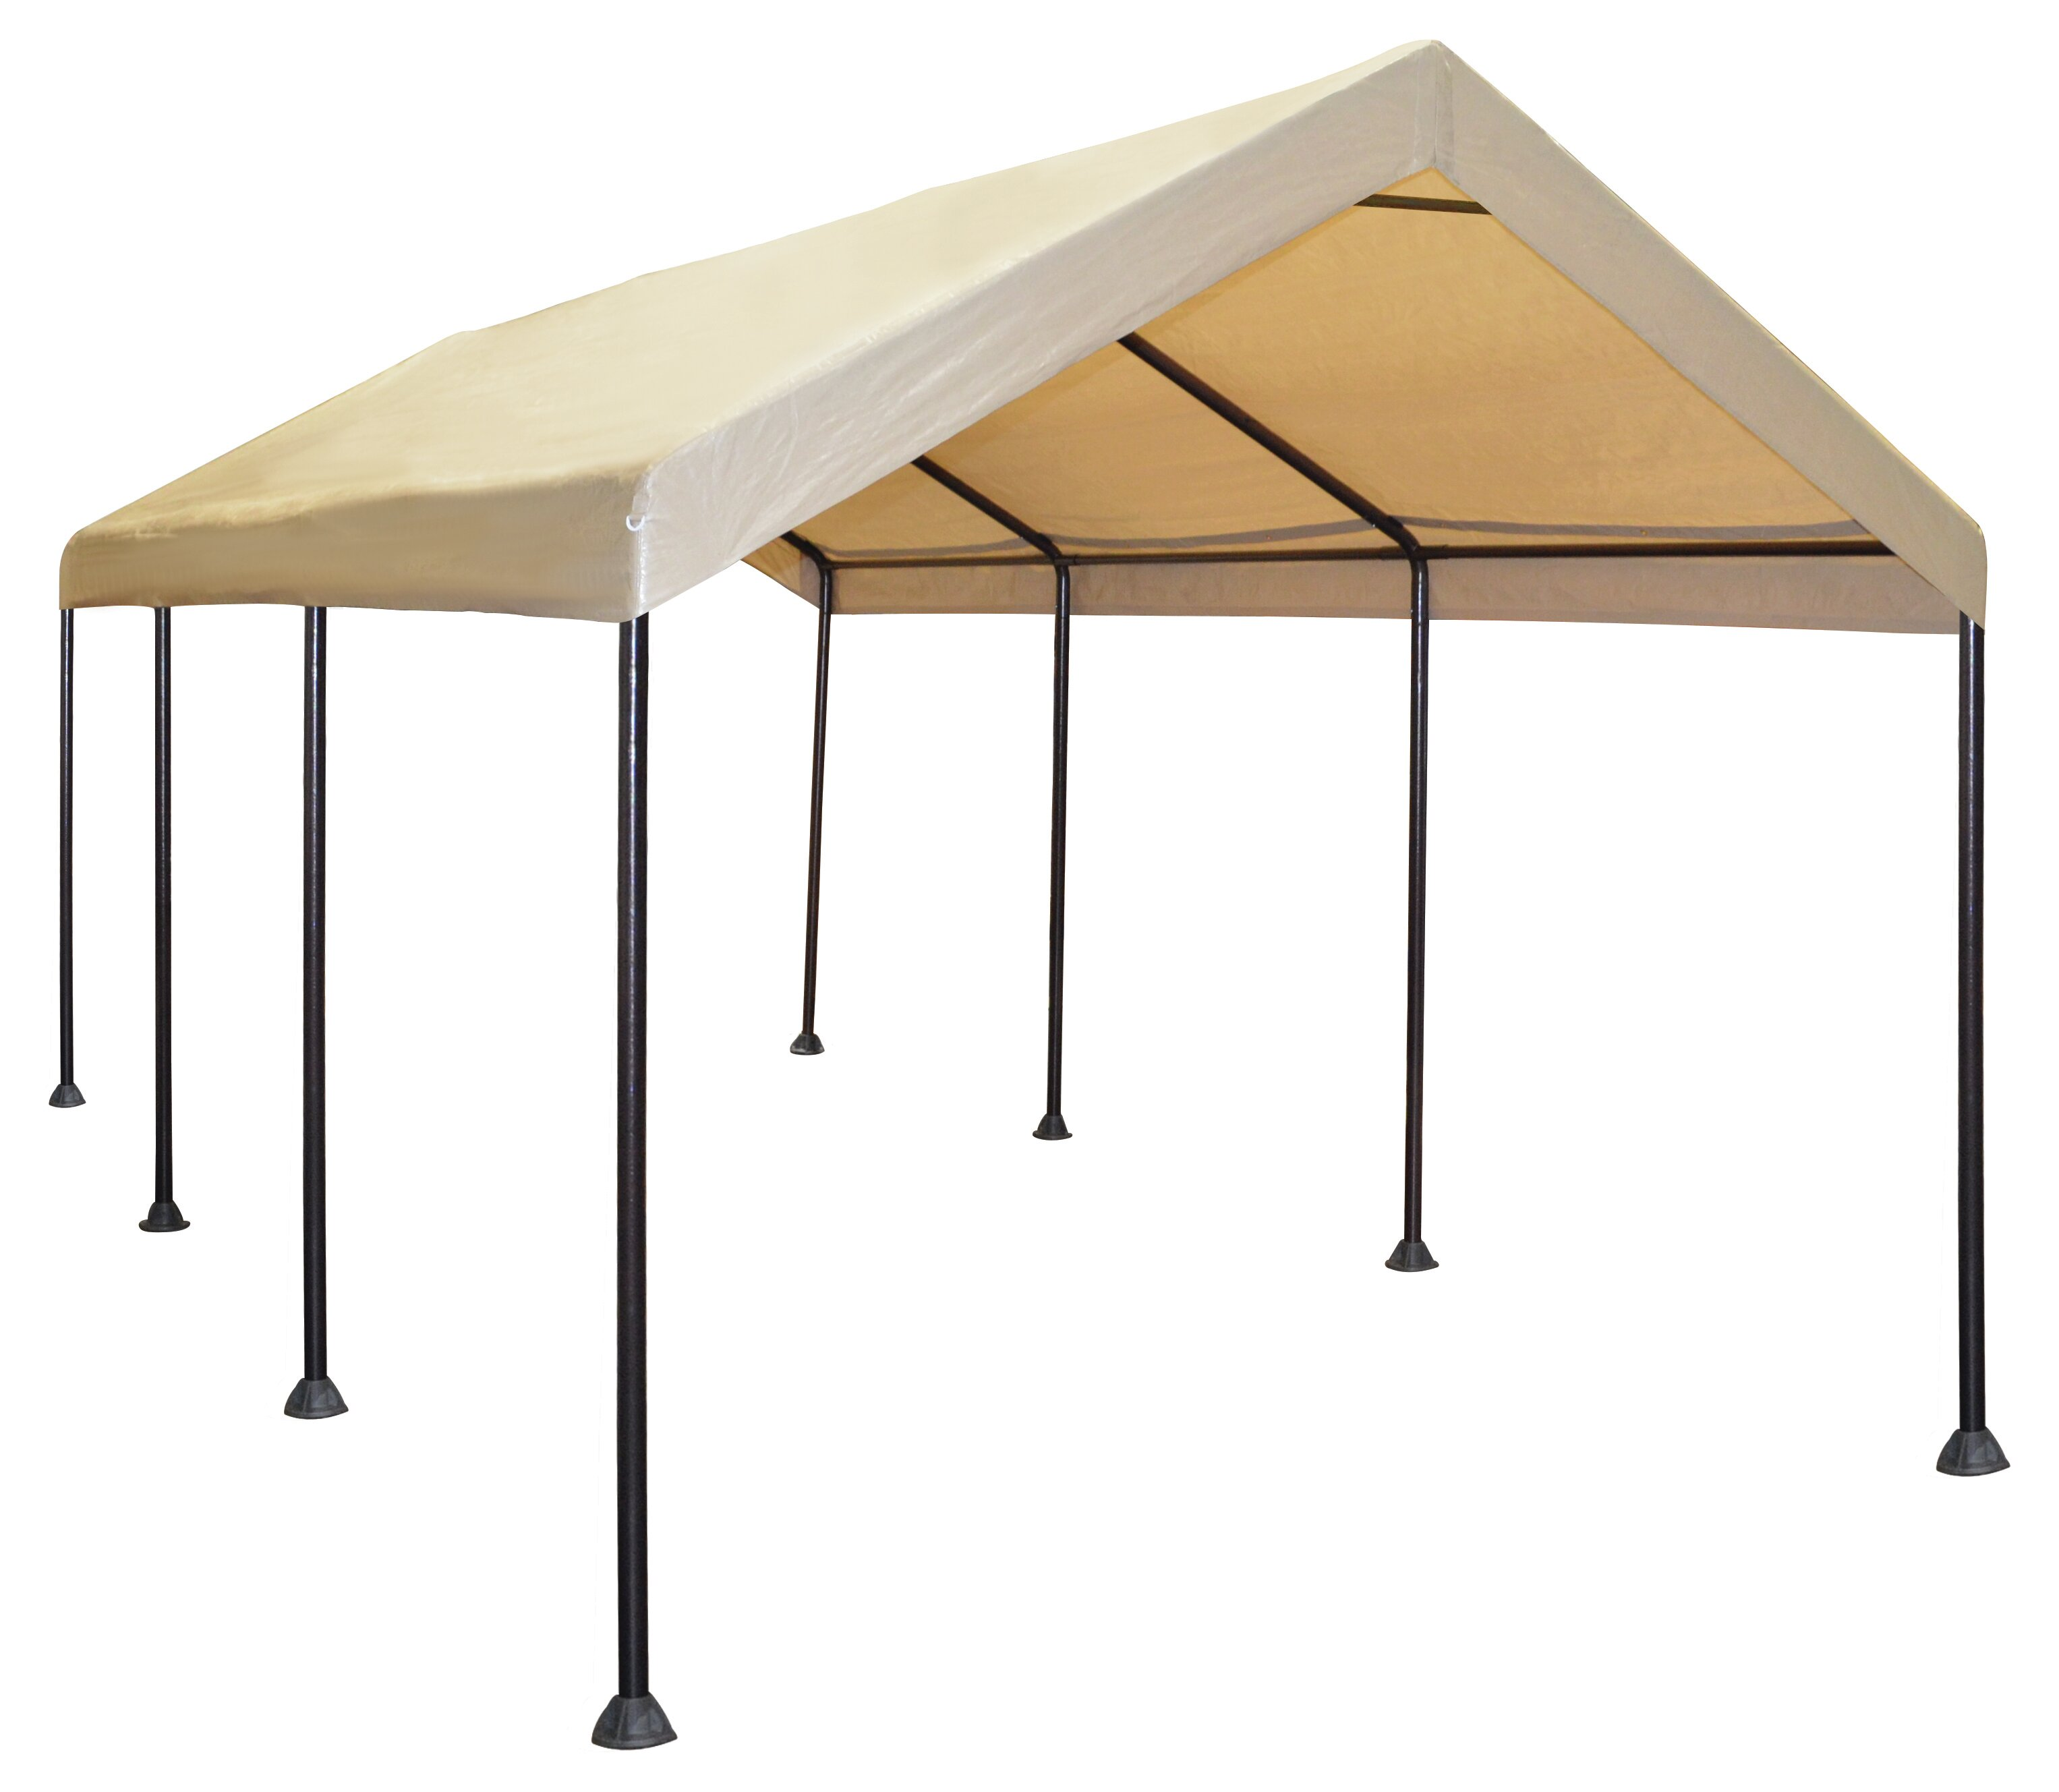 Caravancanopy Mega Domain 20 Ft W X 10 Ft D Metal Canopy Reviews Wayfair